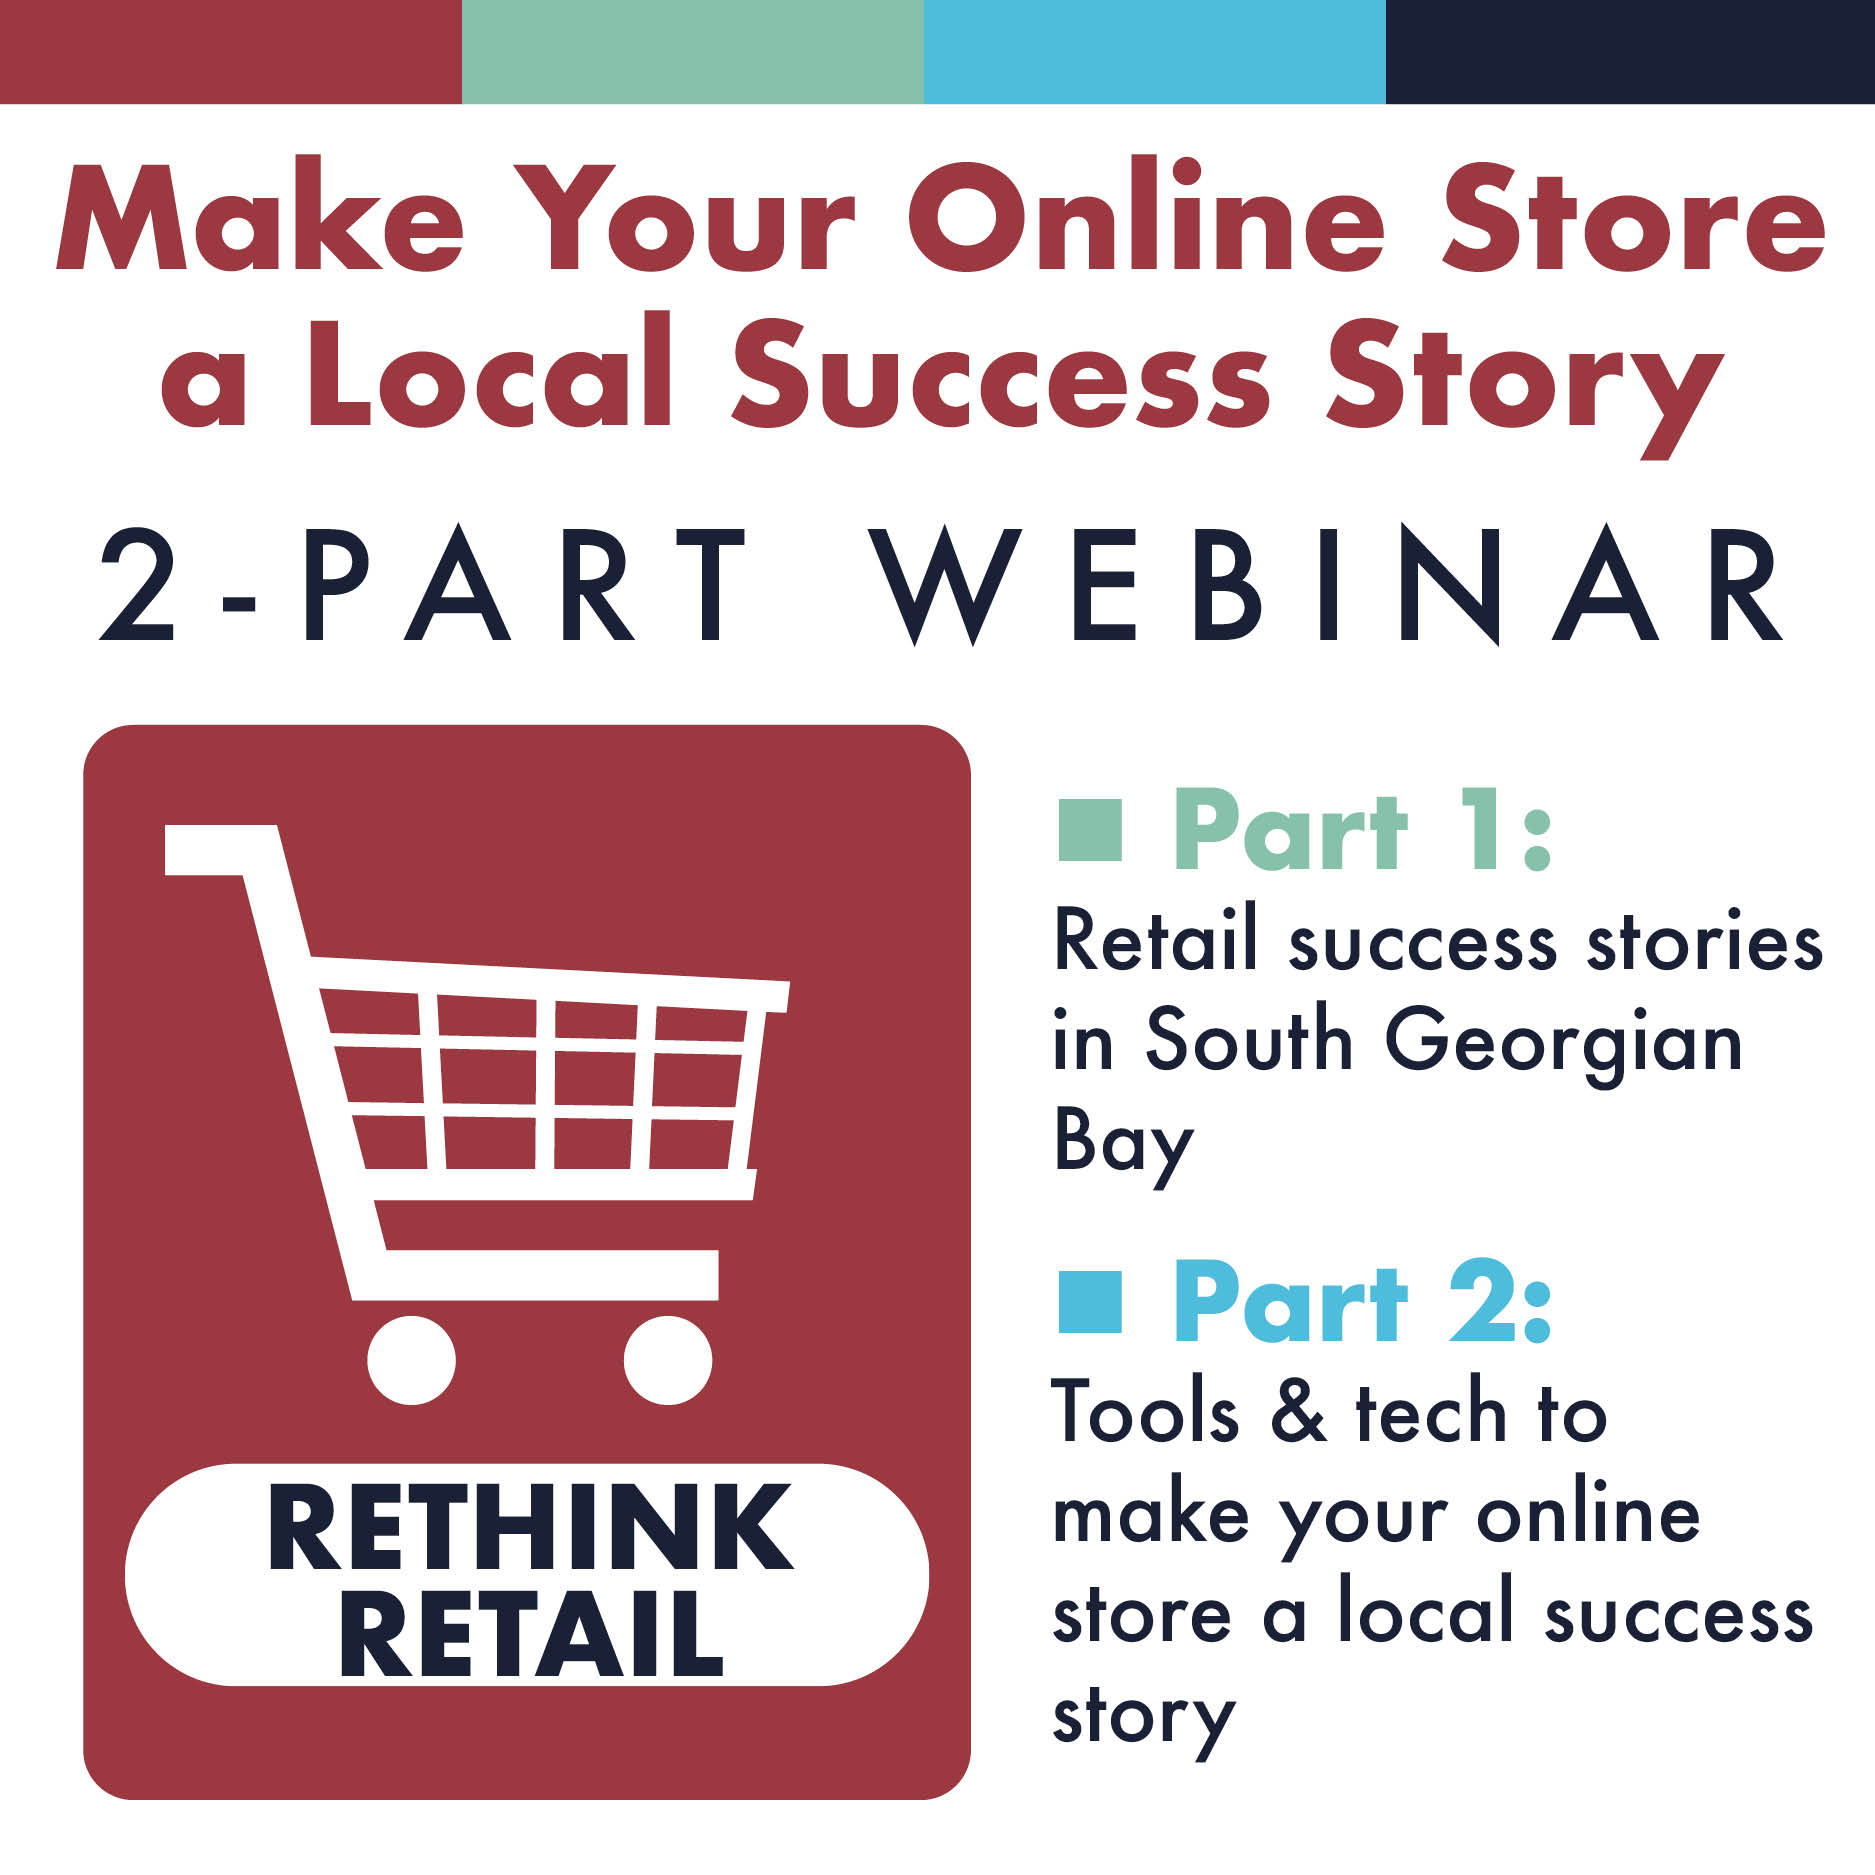 Access to webinar on Making Your Online Store a Local Success Story